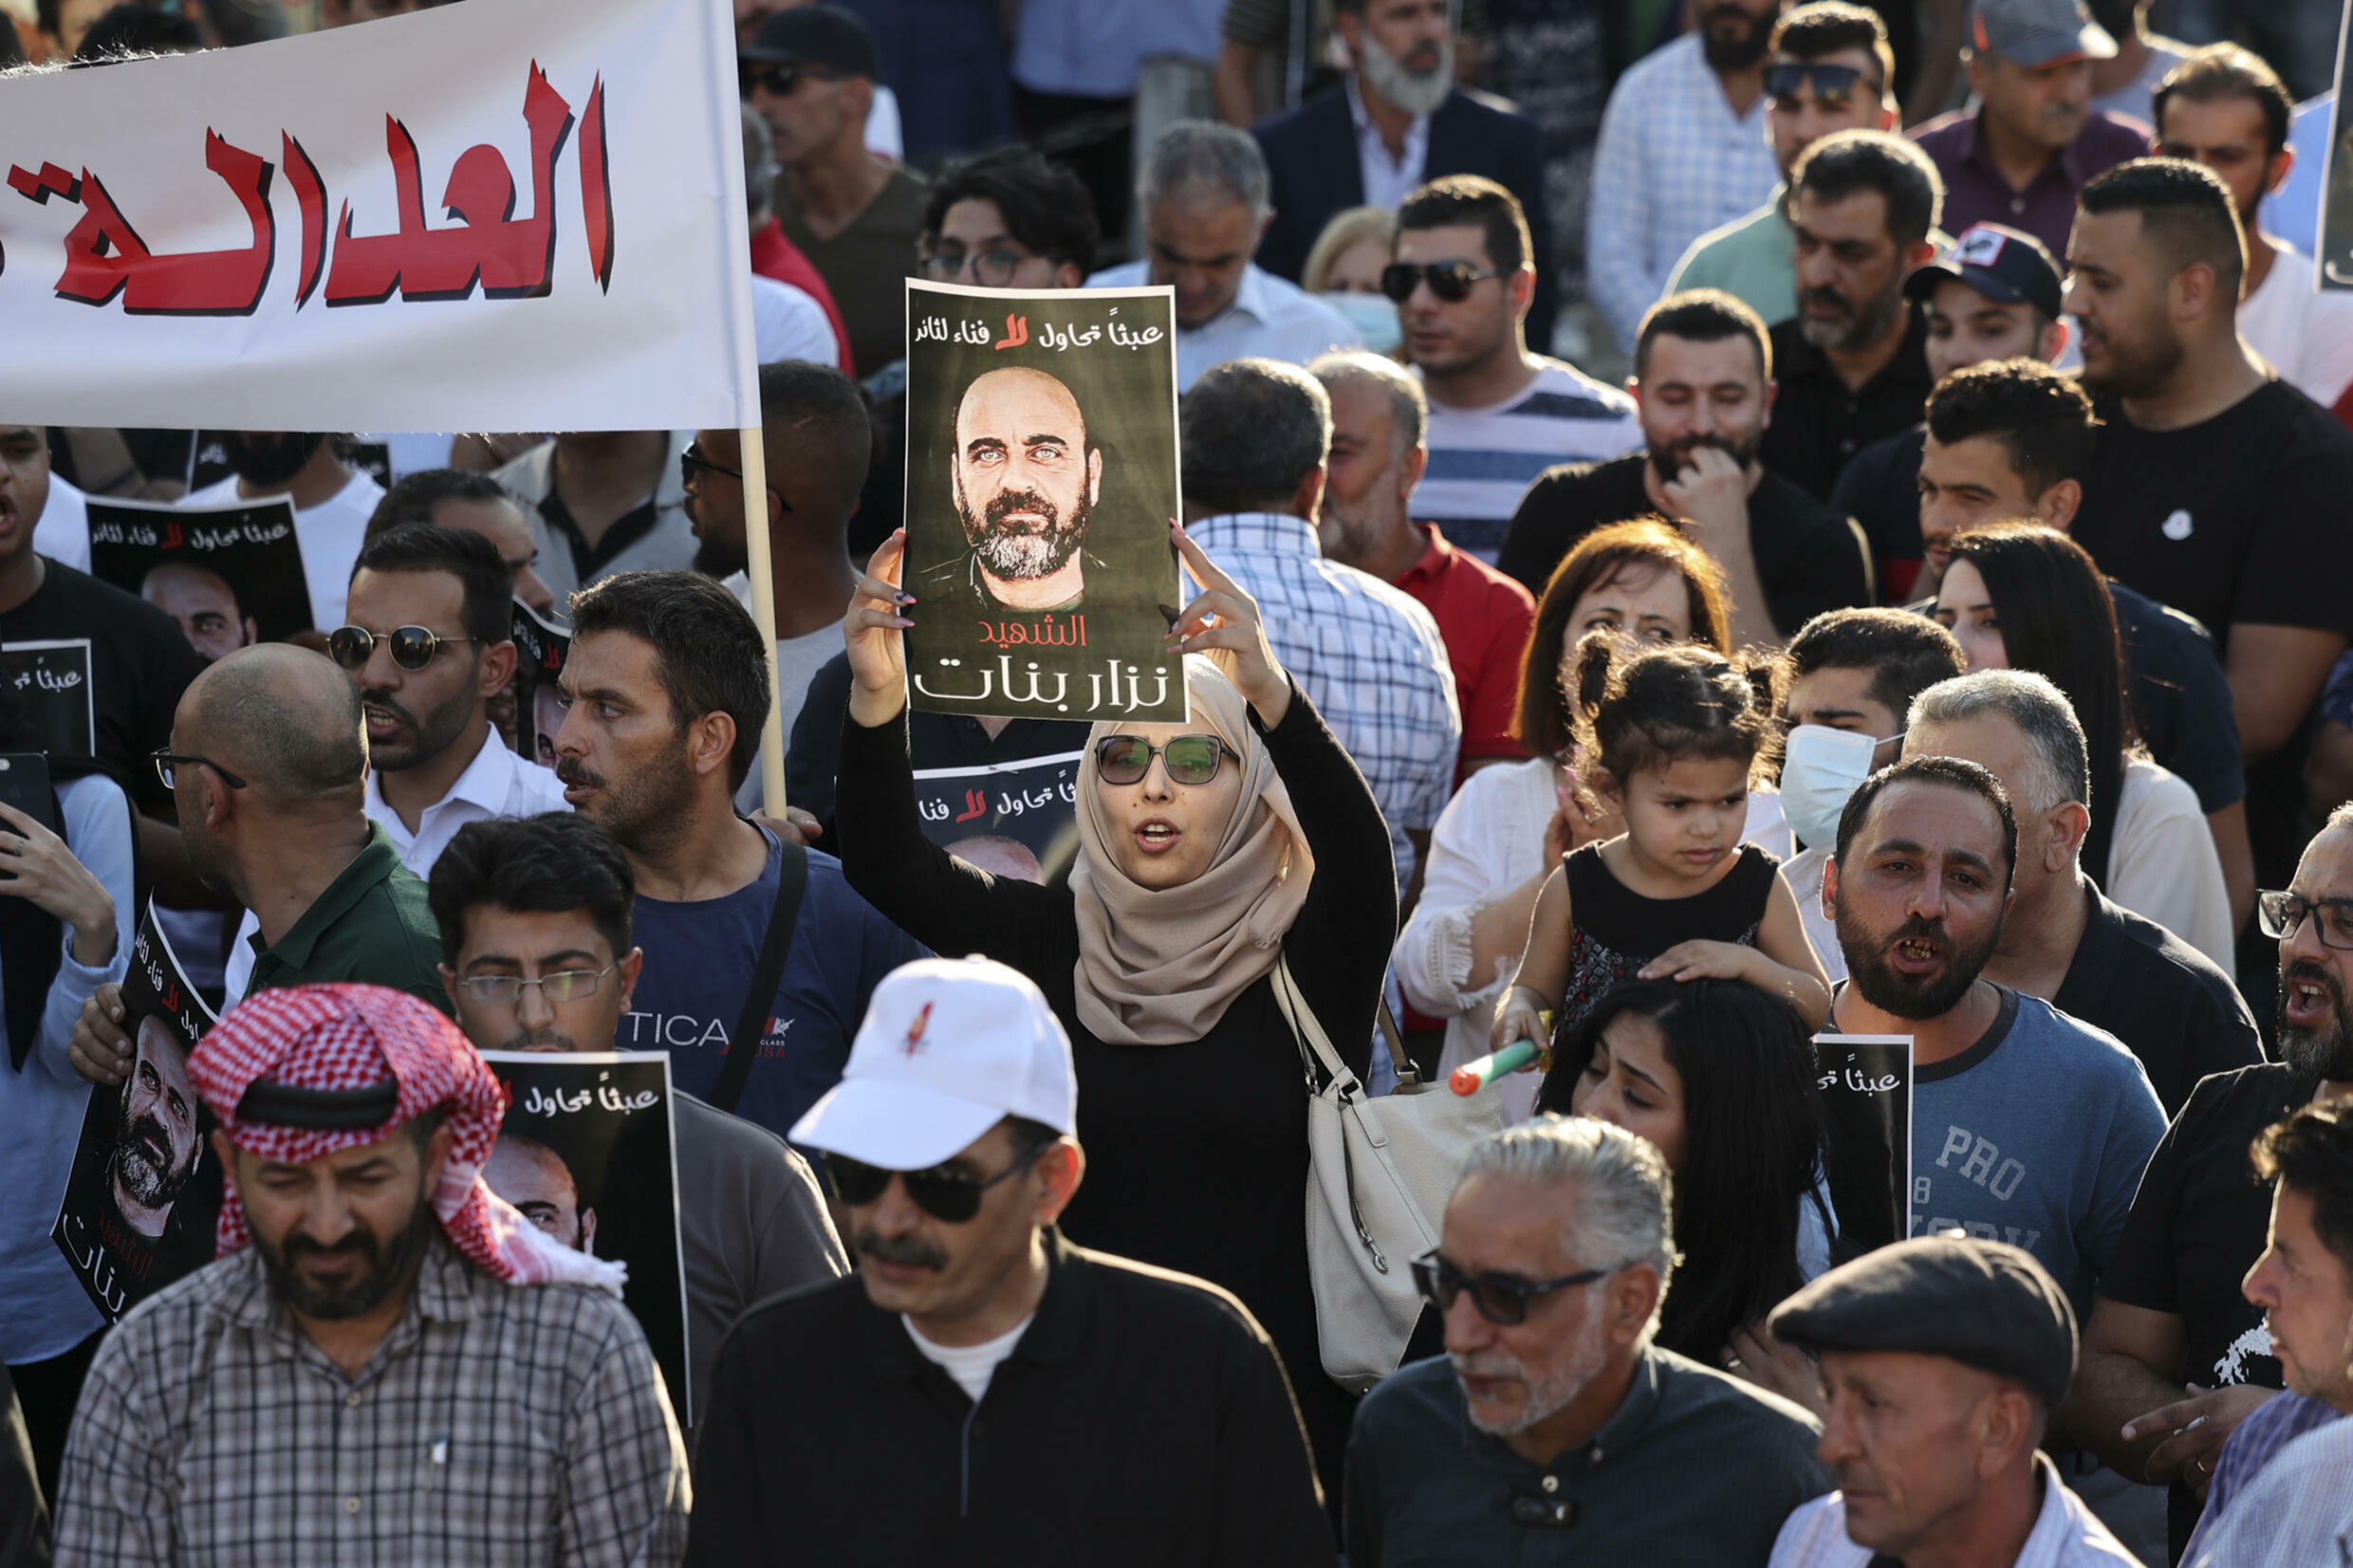 The death in custody of Nizar Banat, a leading critic of the Palestinian Authority, sparked angry demonstrations in the West Bank to demand justice